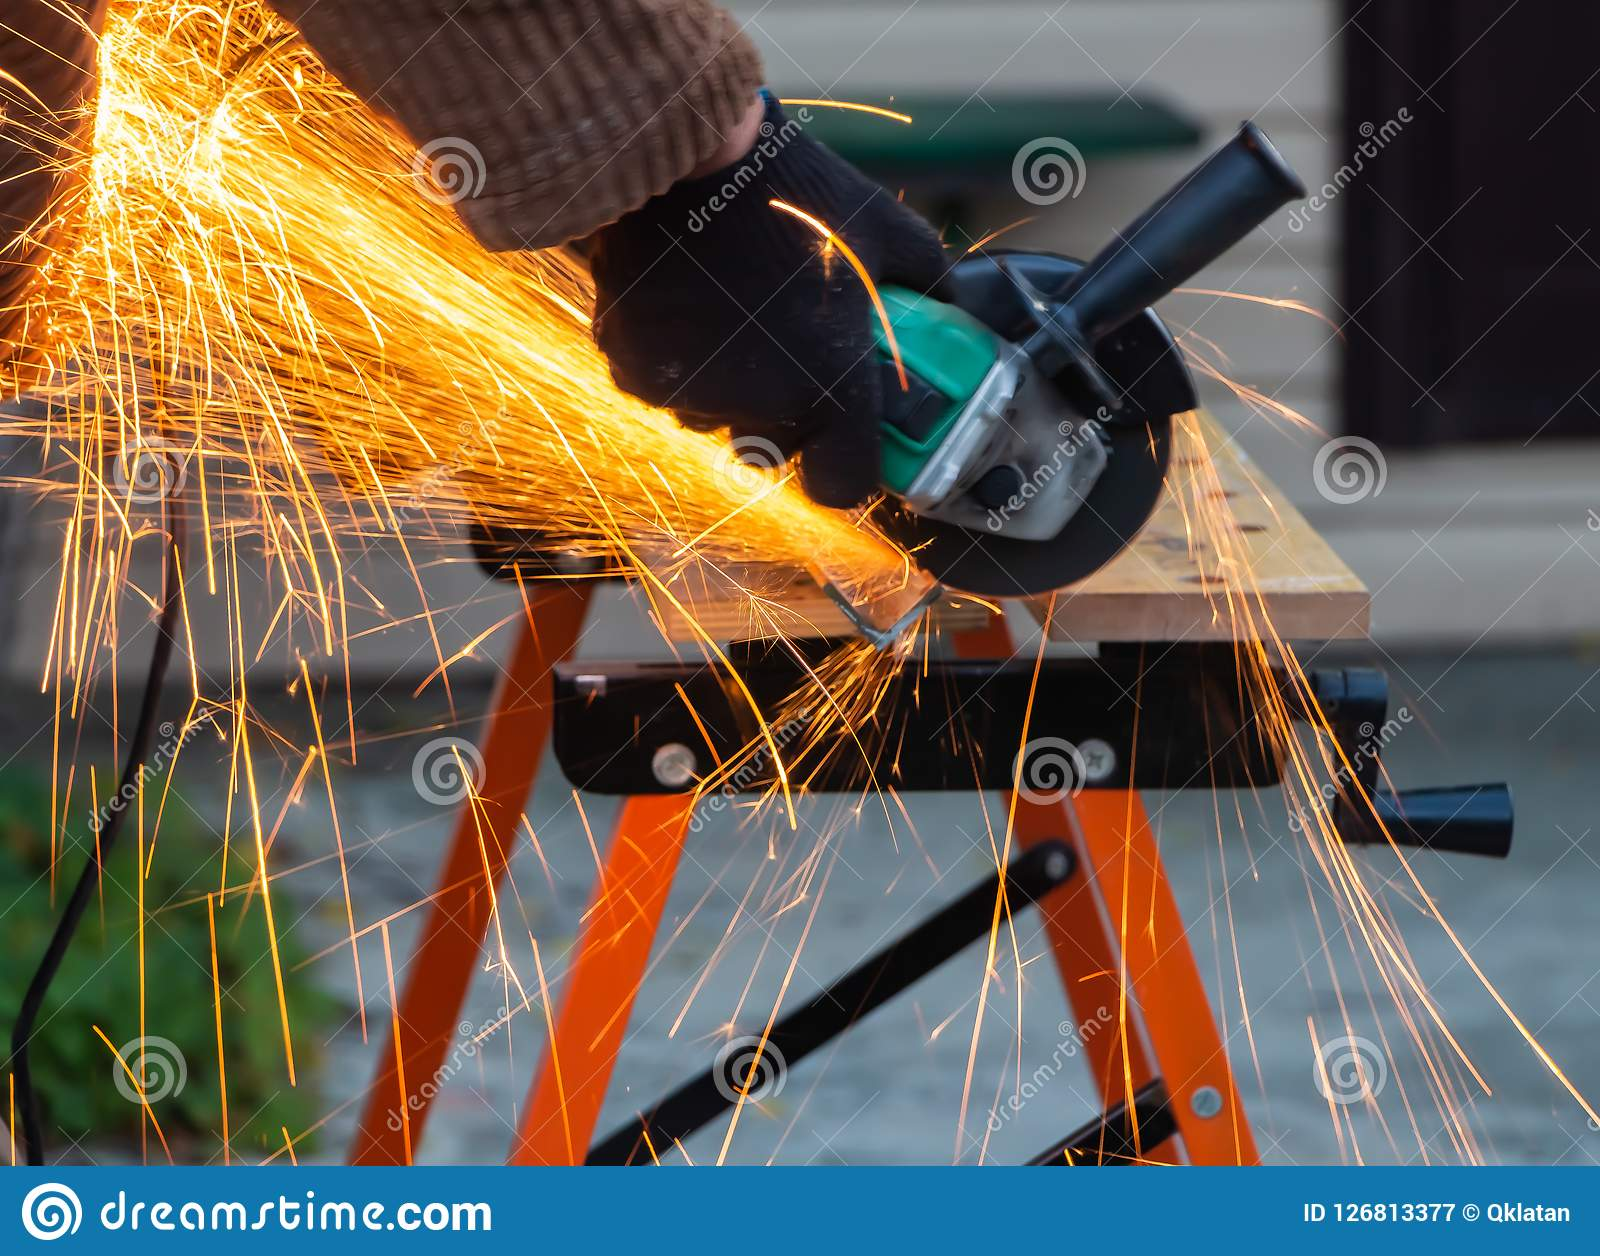 A man in the black working gloves cuts metal using an angle grinder tool with beautiful yellow sparks on a work bench